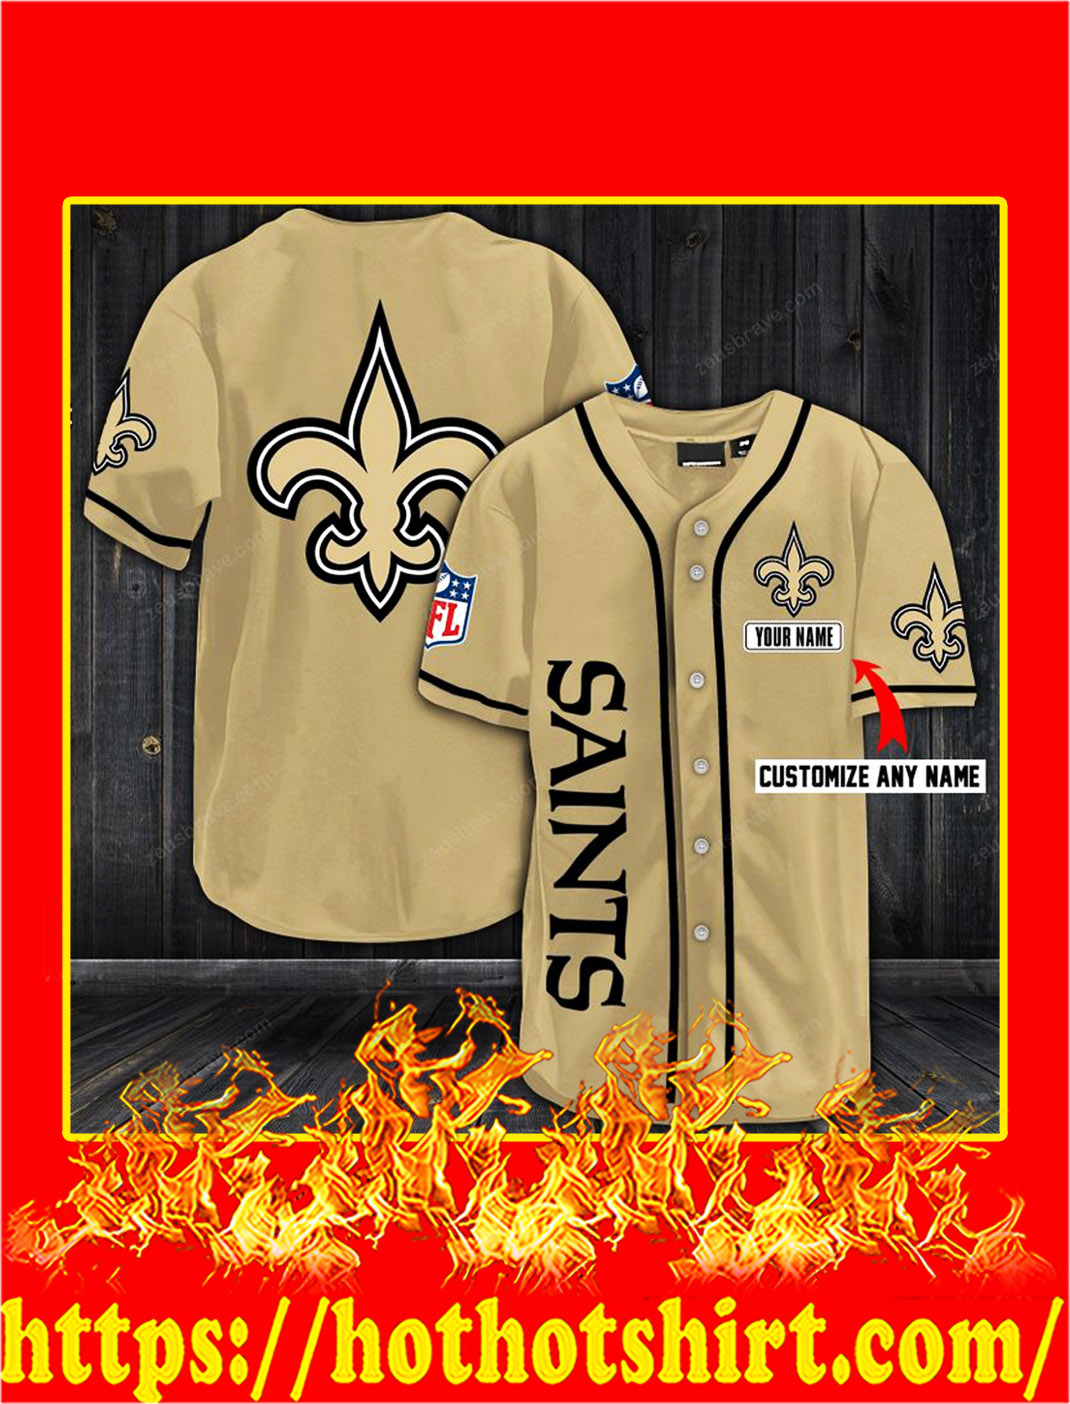 Customize name new orleans saints hawaiian shirt- old gold